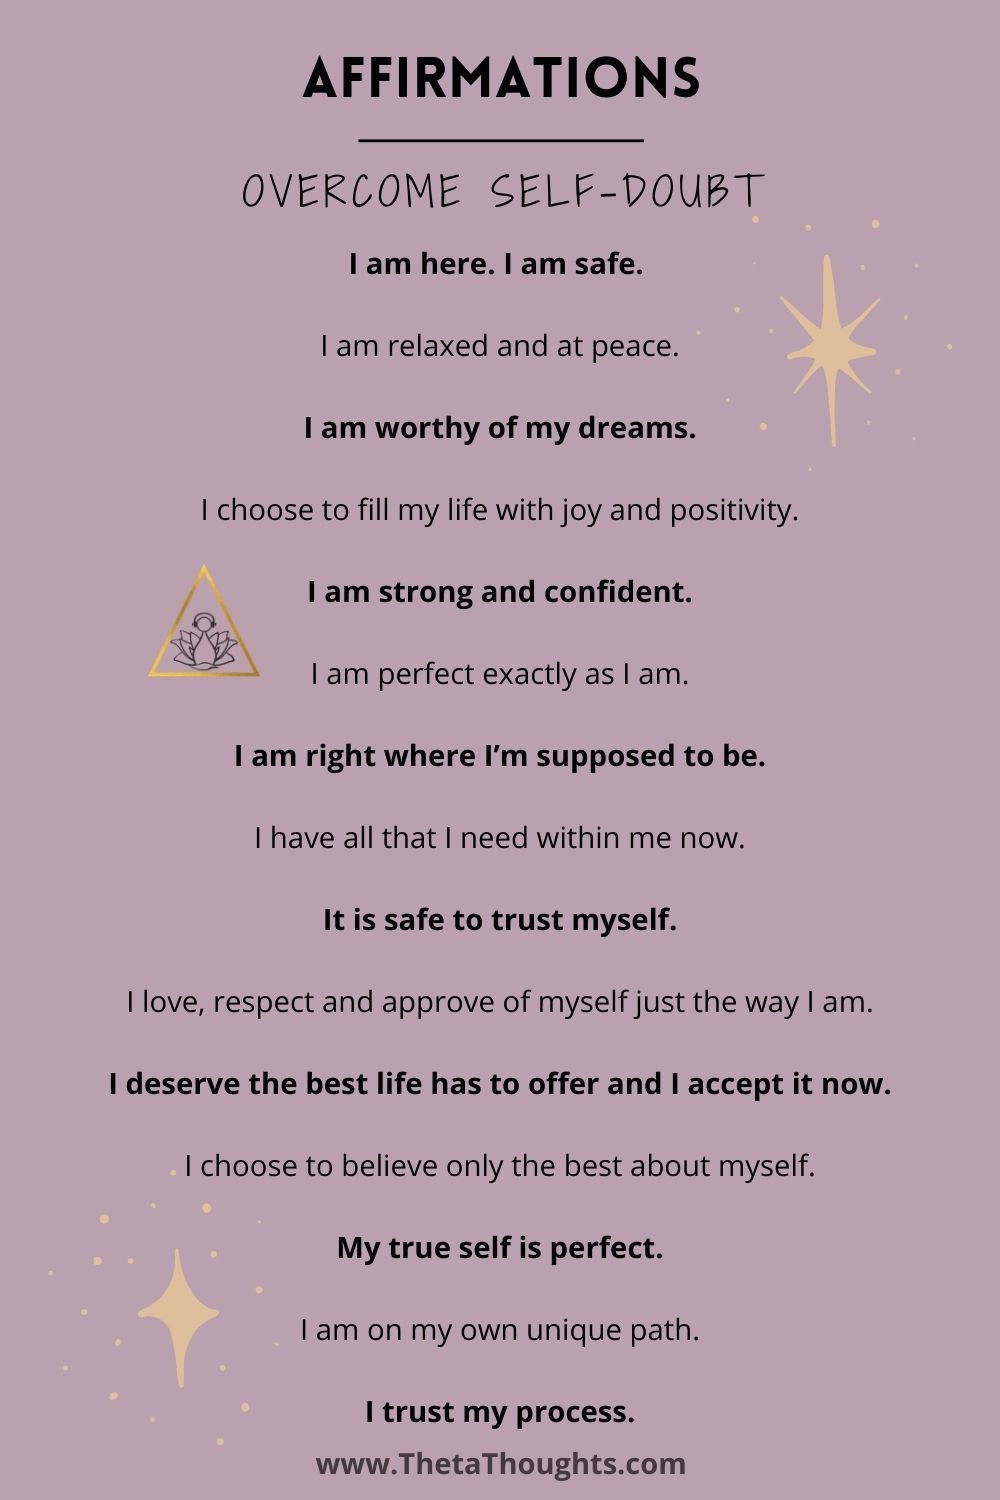 Positive Affirmations to Overcome Self-Doubt and Boost Confidence